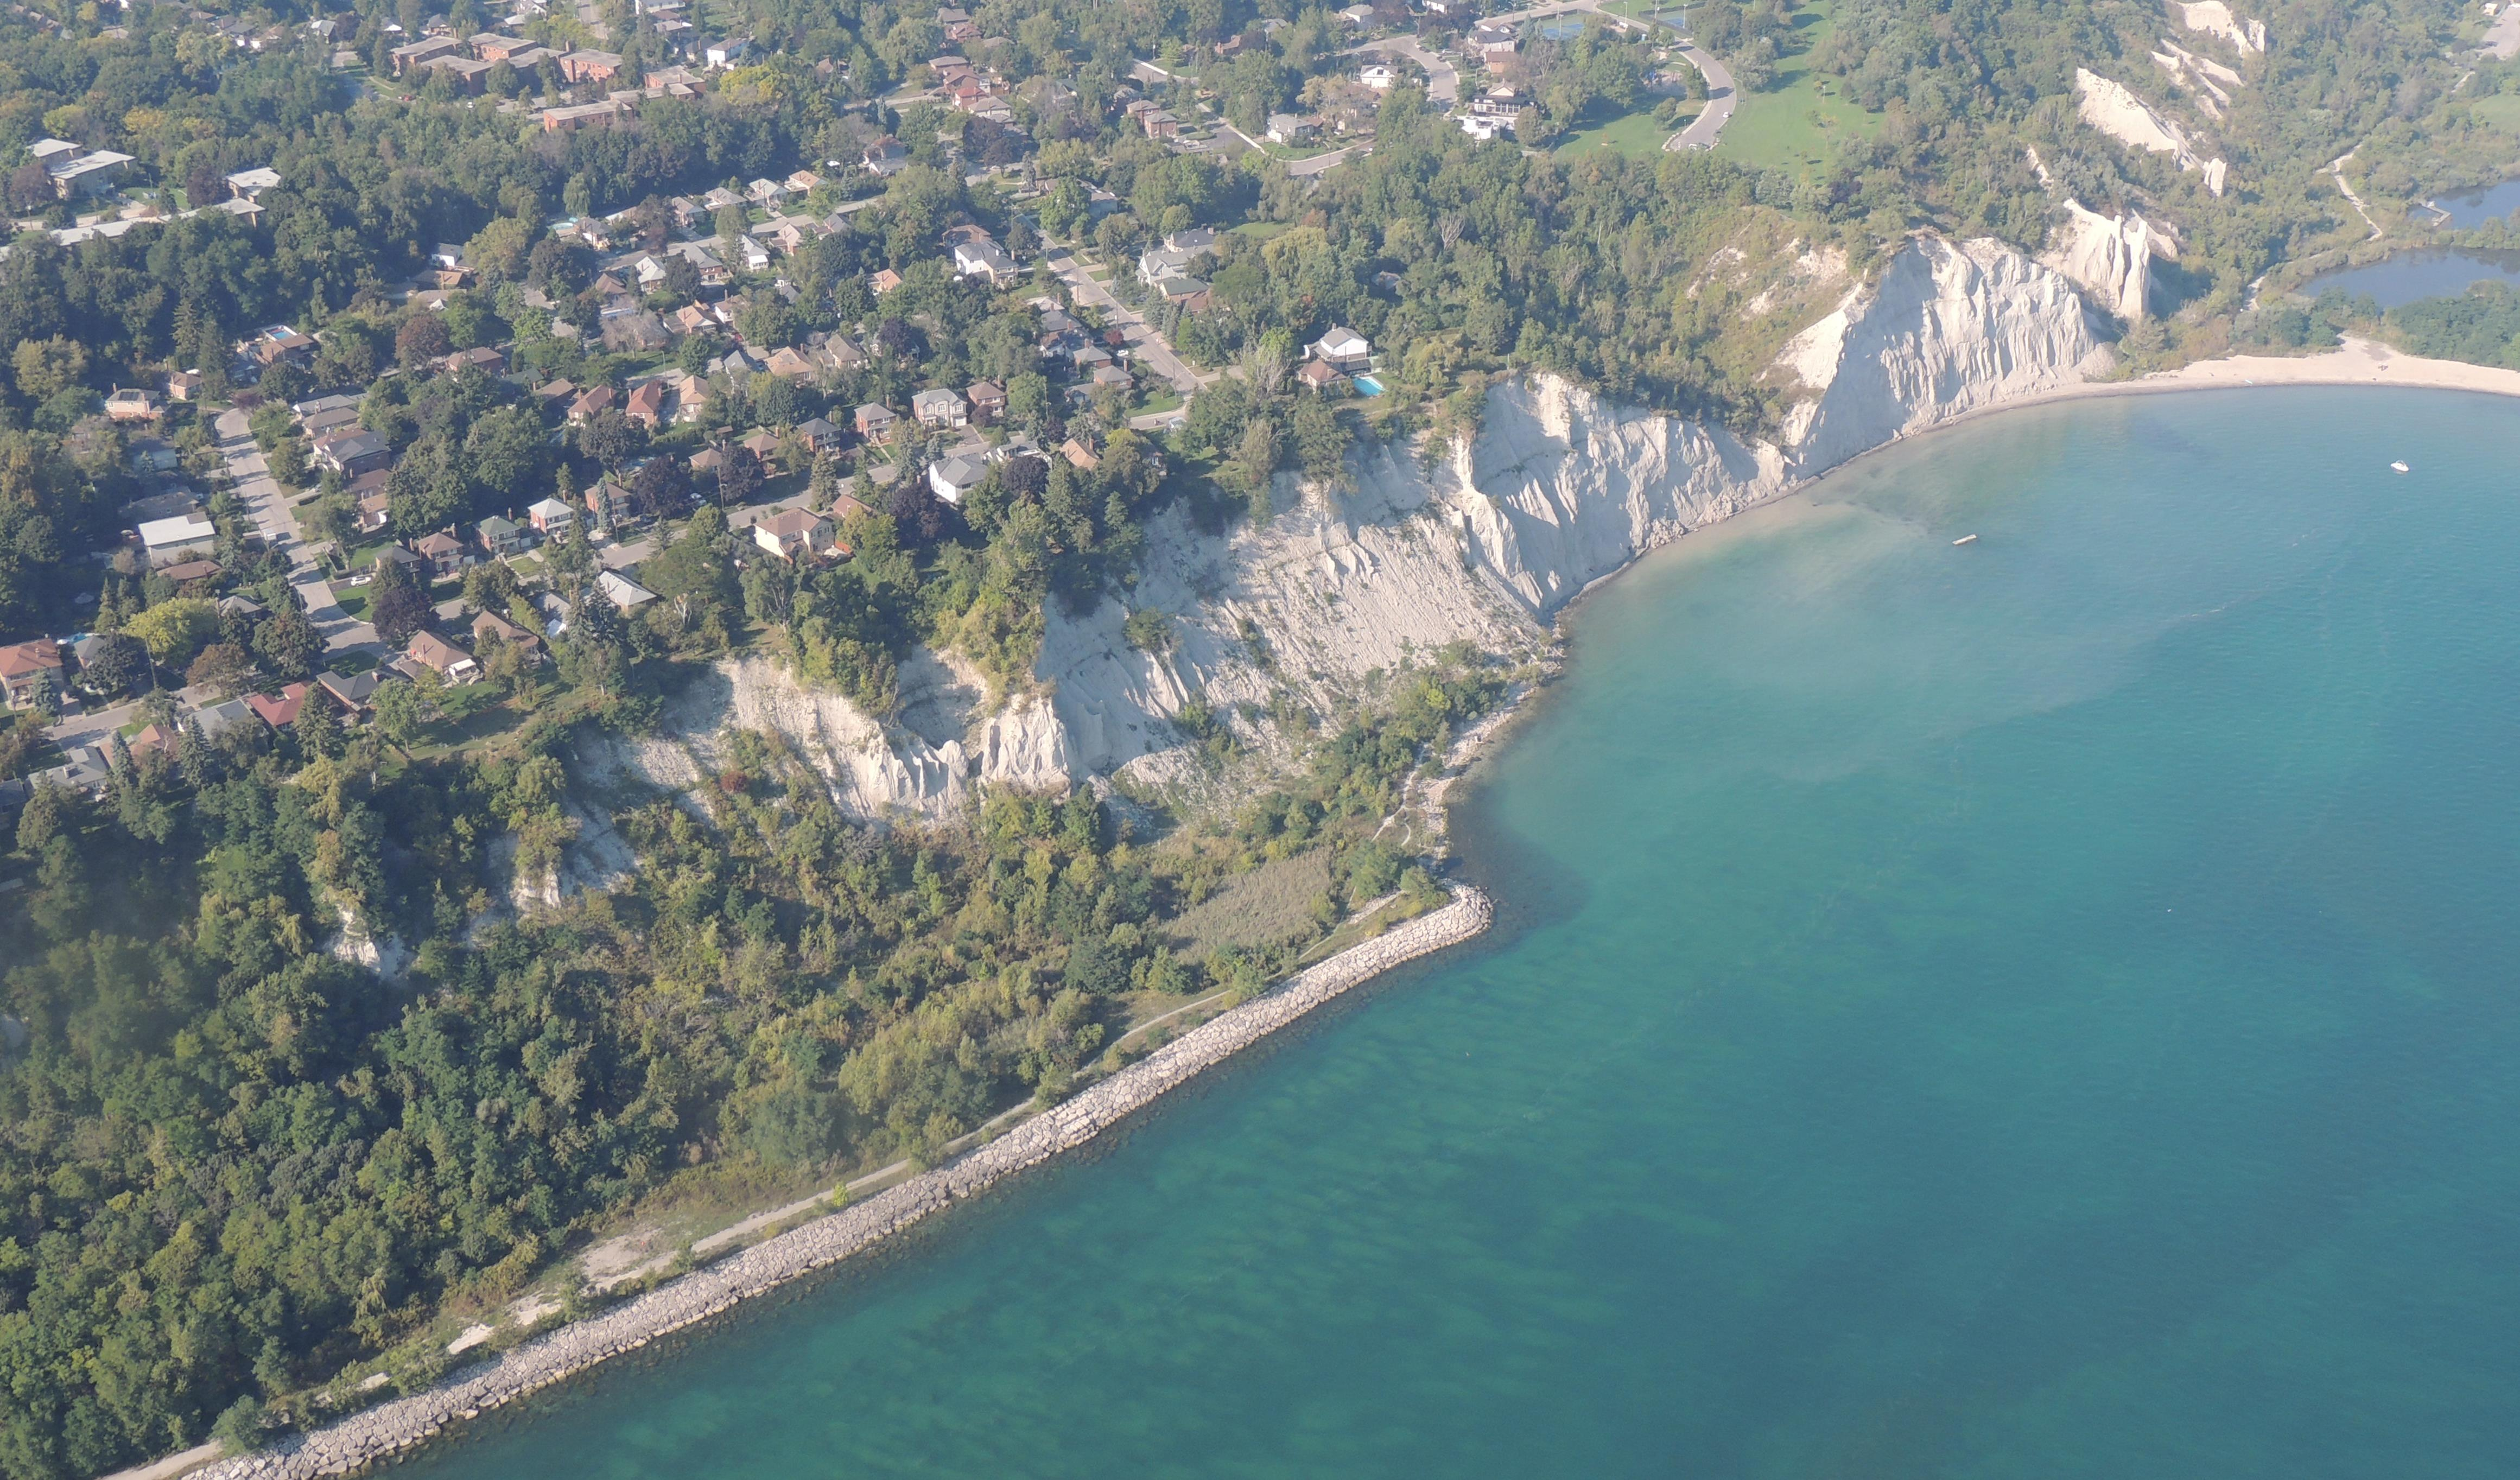 Aerial photograph of existing erosion control